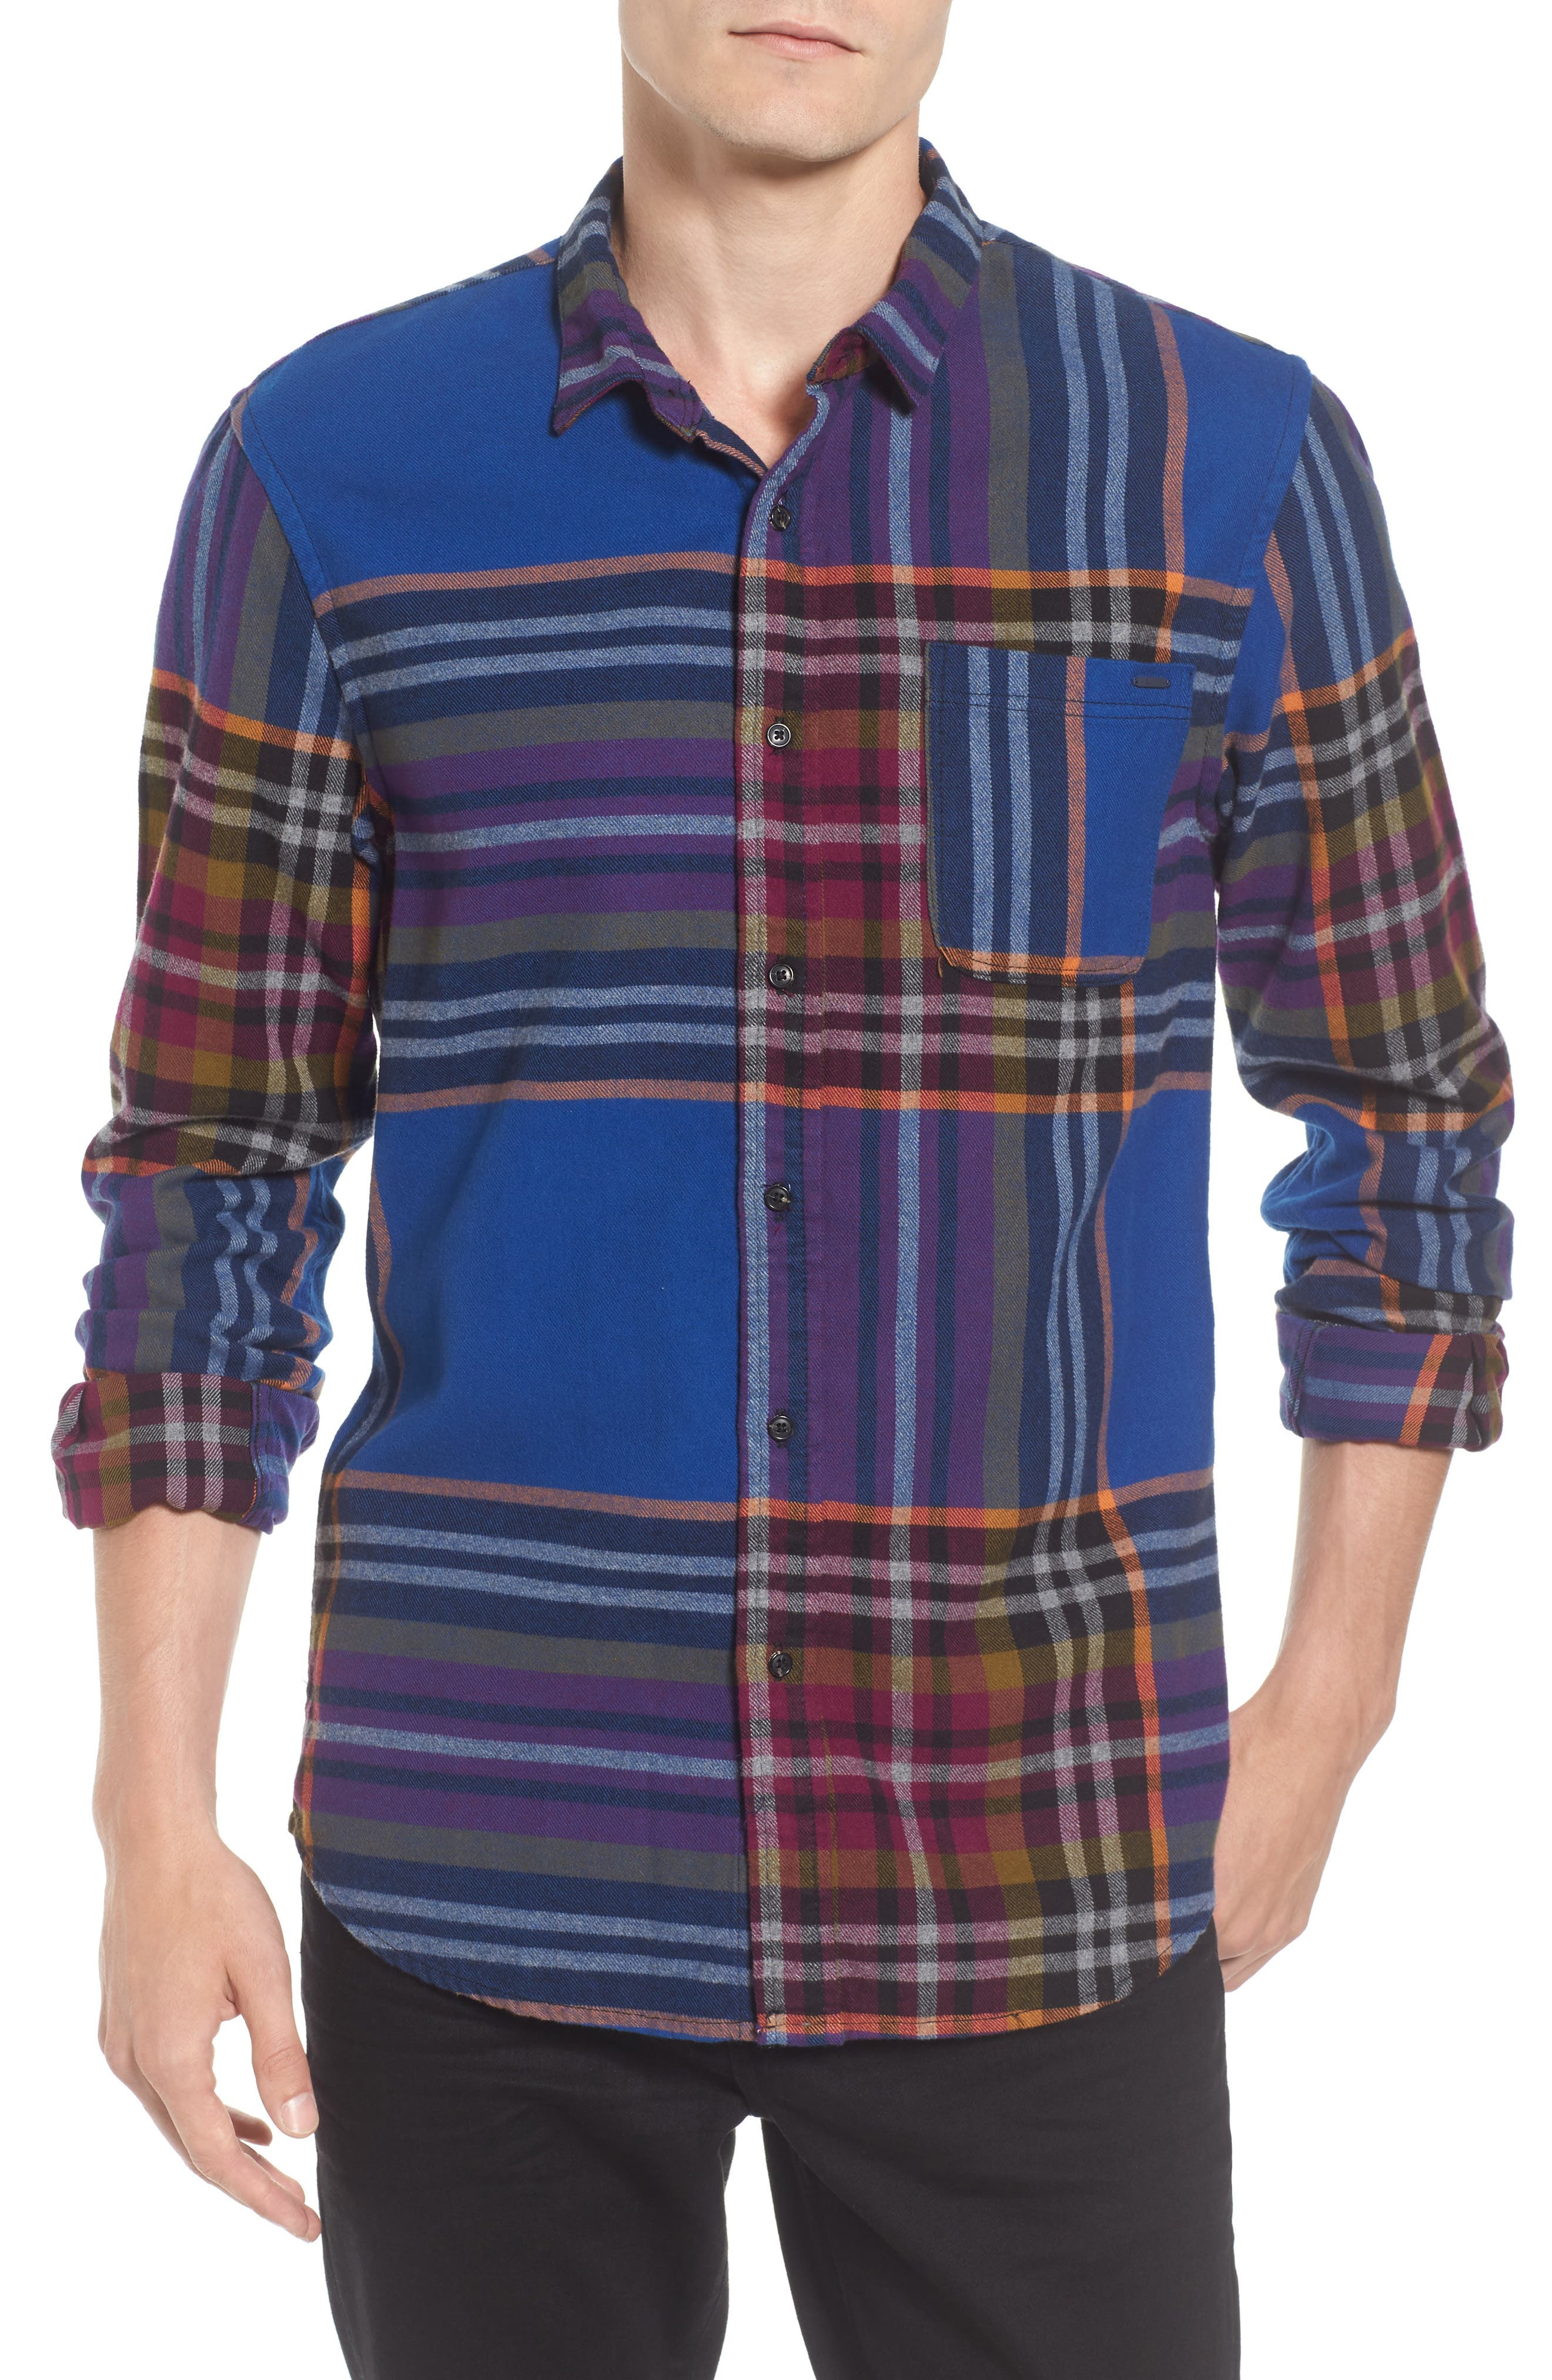 Main Image - Scotch & Soda Brushed Flannel Plaid Shirt